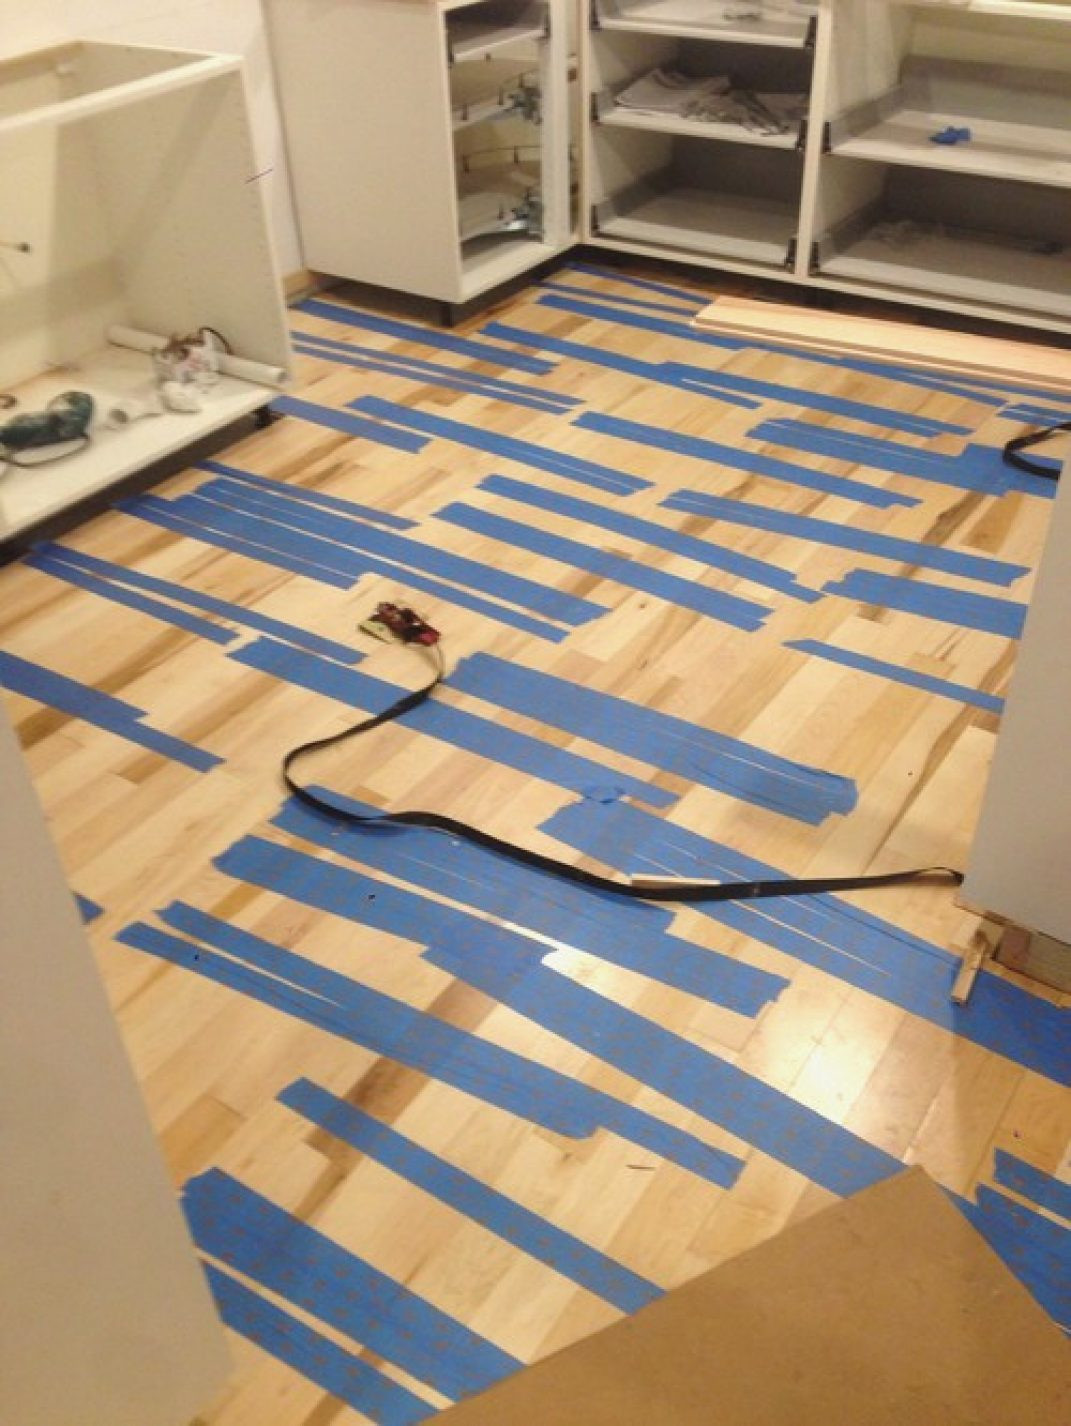 nail down hardwood floor on concrete of wood flooring glue gluing down prefinished solid hardwood floors throughout wood flooring glue gluing down prefinished solid hardwood floors directly quintessence engineered concrete bouniqueaz com